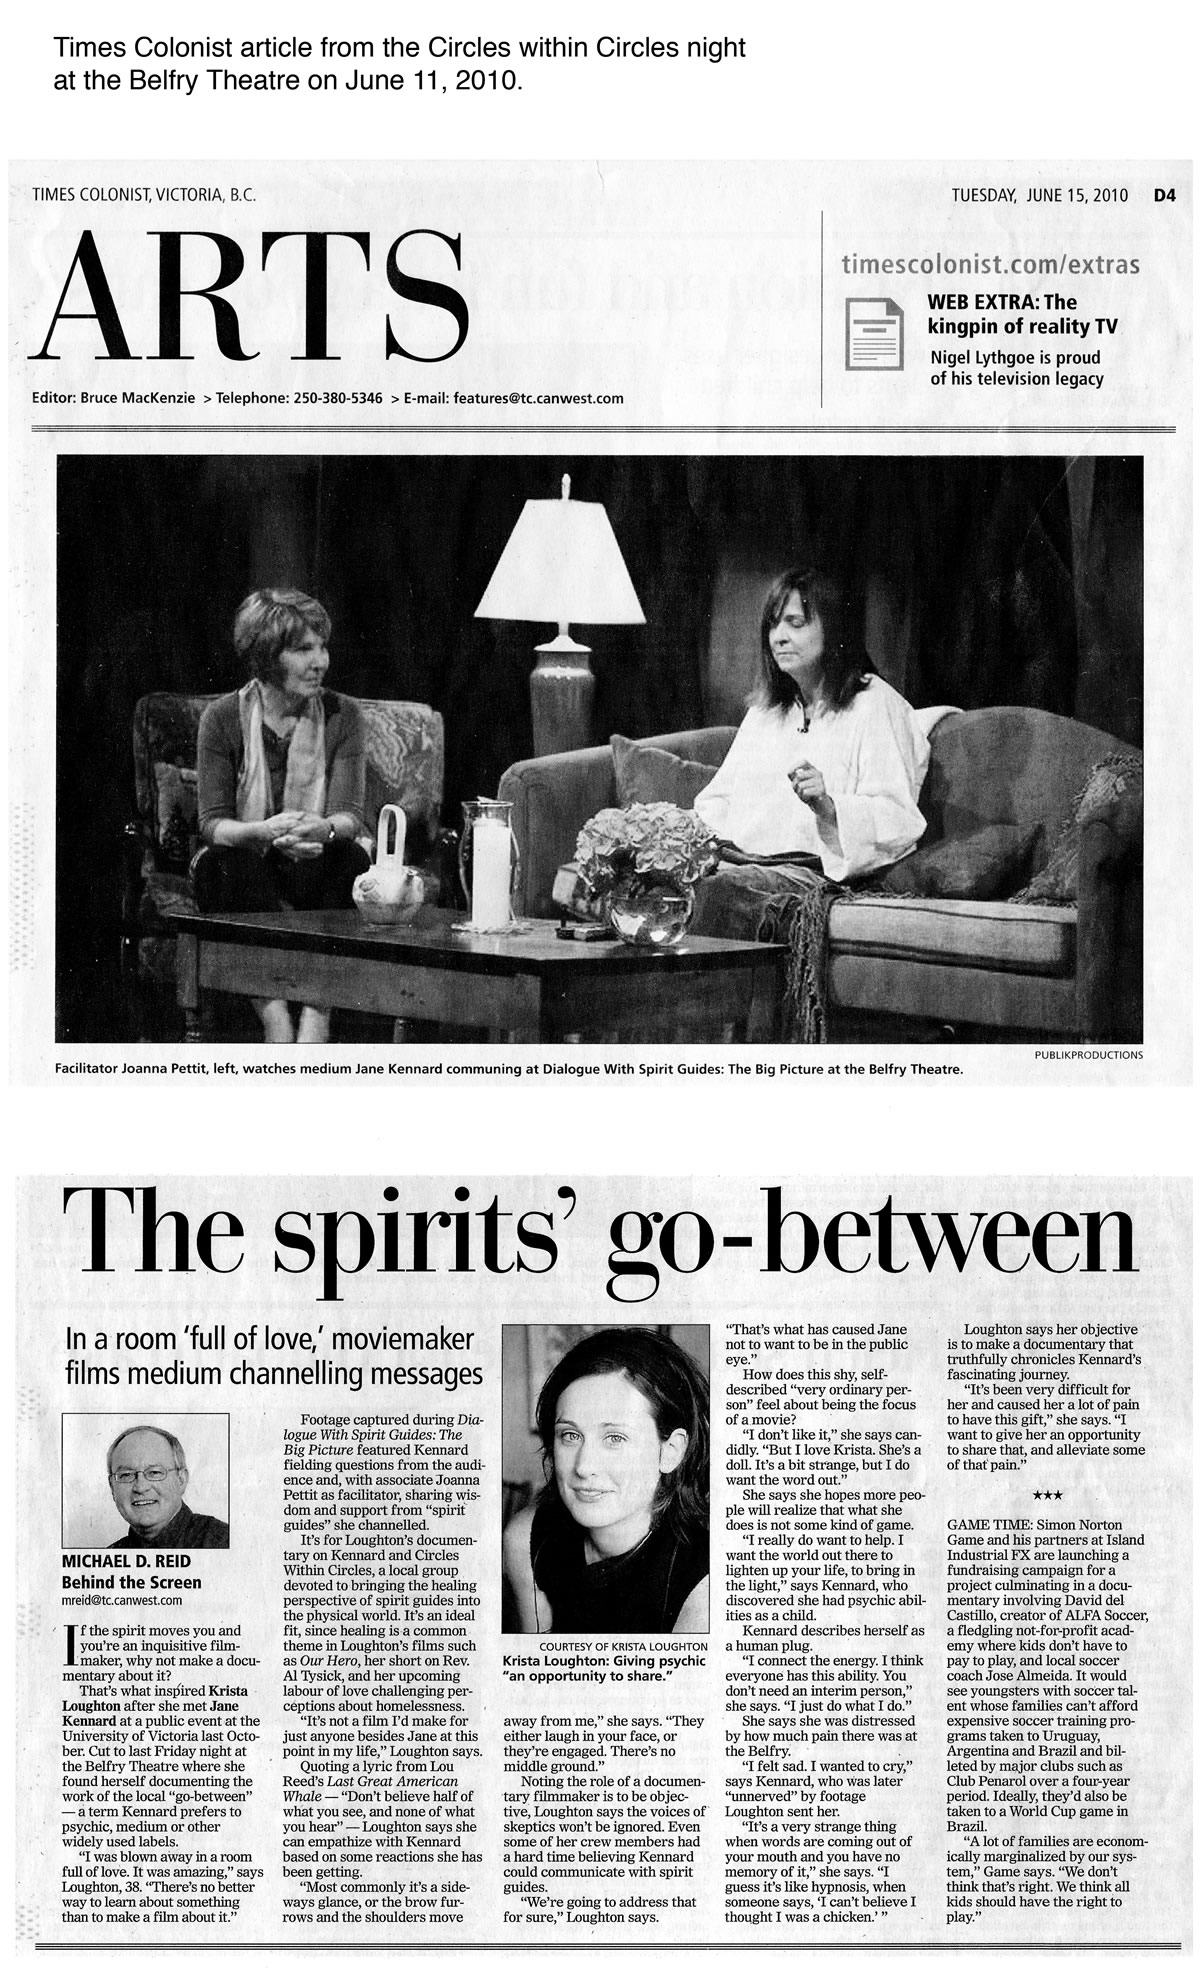 The-Spirits-Go-between-Times-Colonist-article-by-Michael-D-Reid-2010-about-Jane-Kennard-1200